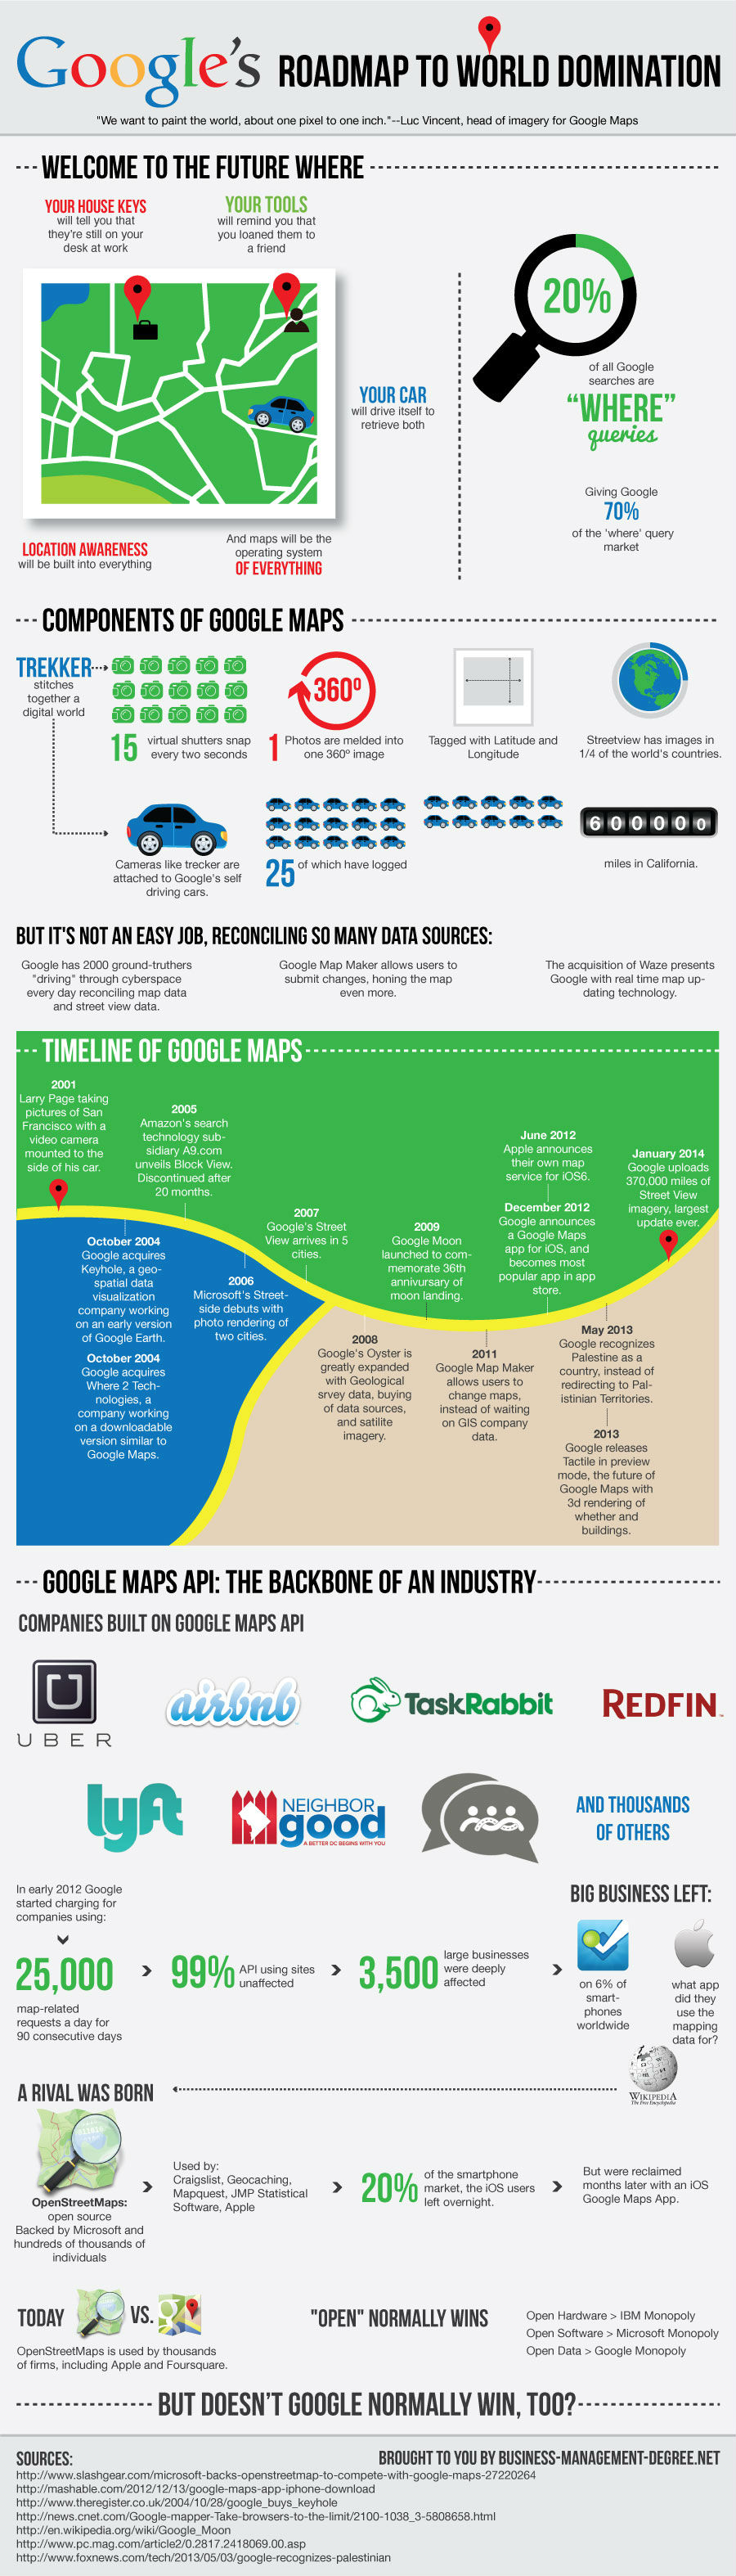 Google Road Map to World Domination [Infographic]